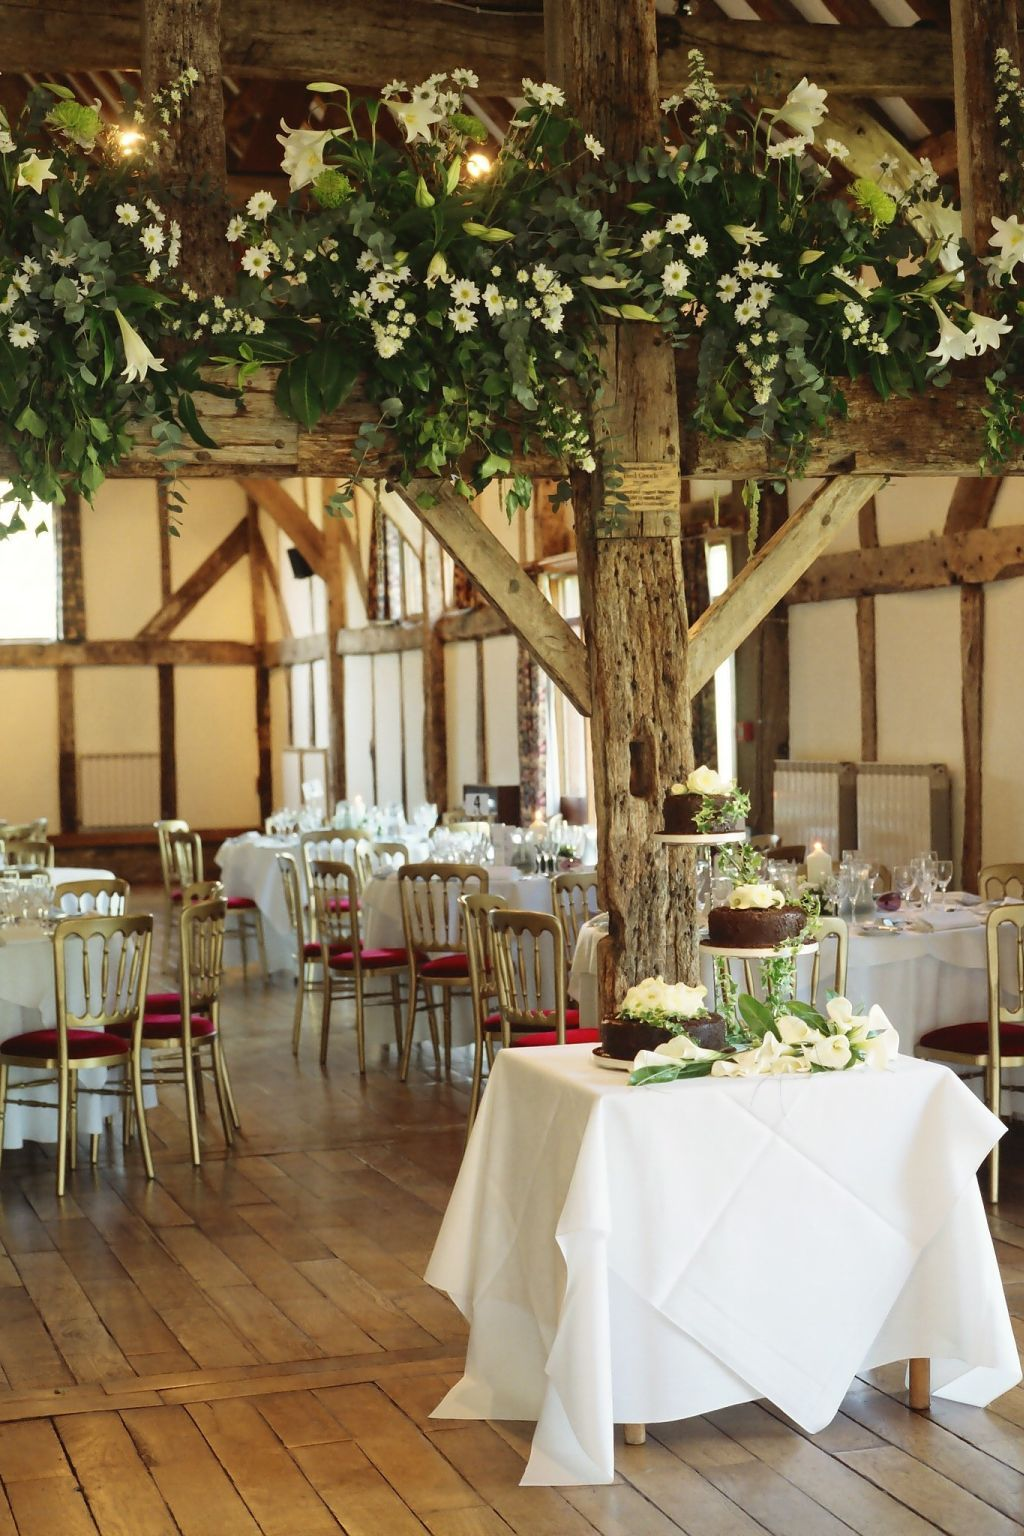 Rustic Country Decorating Ideas #A30